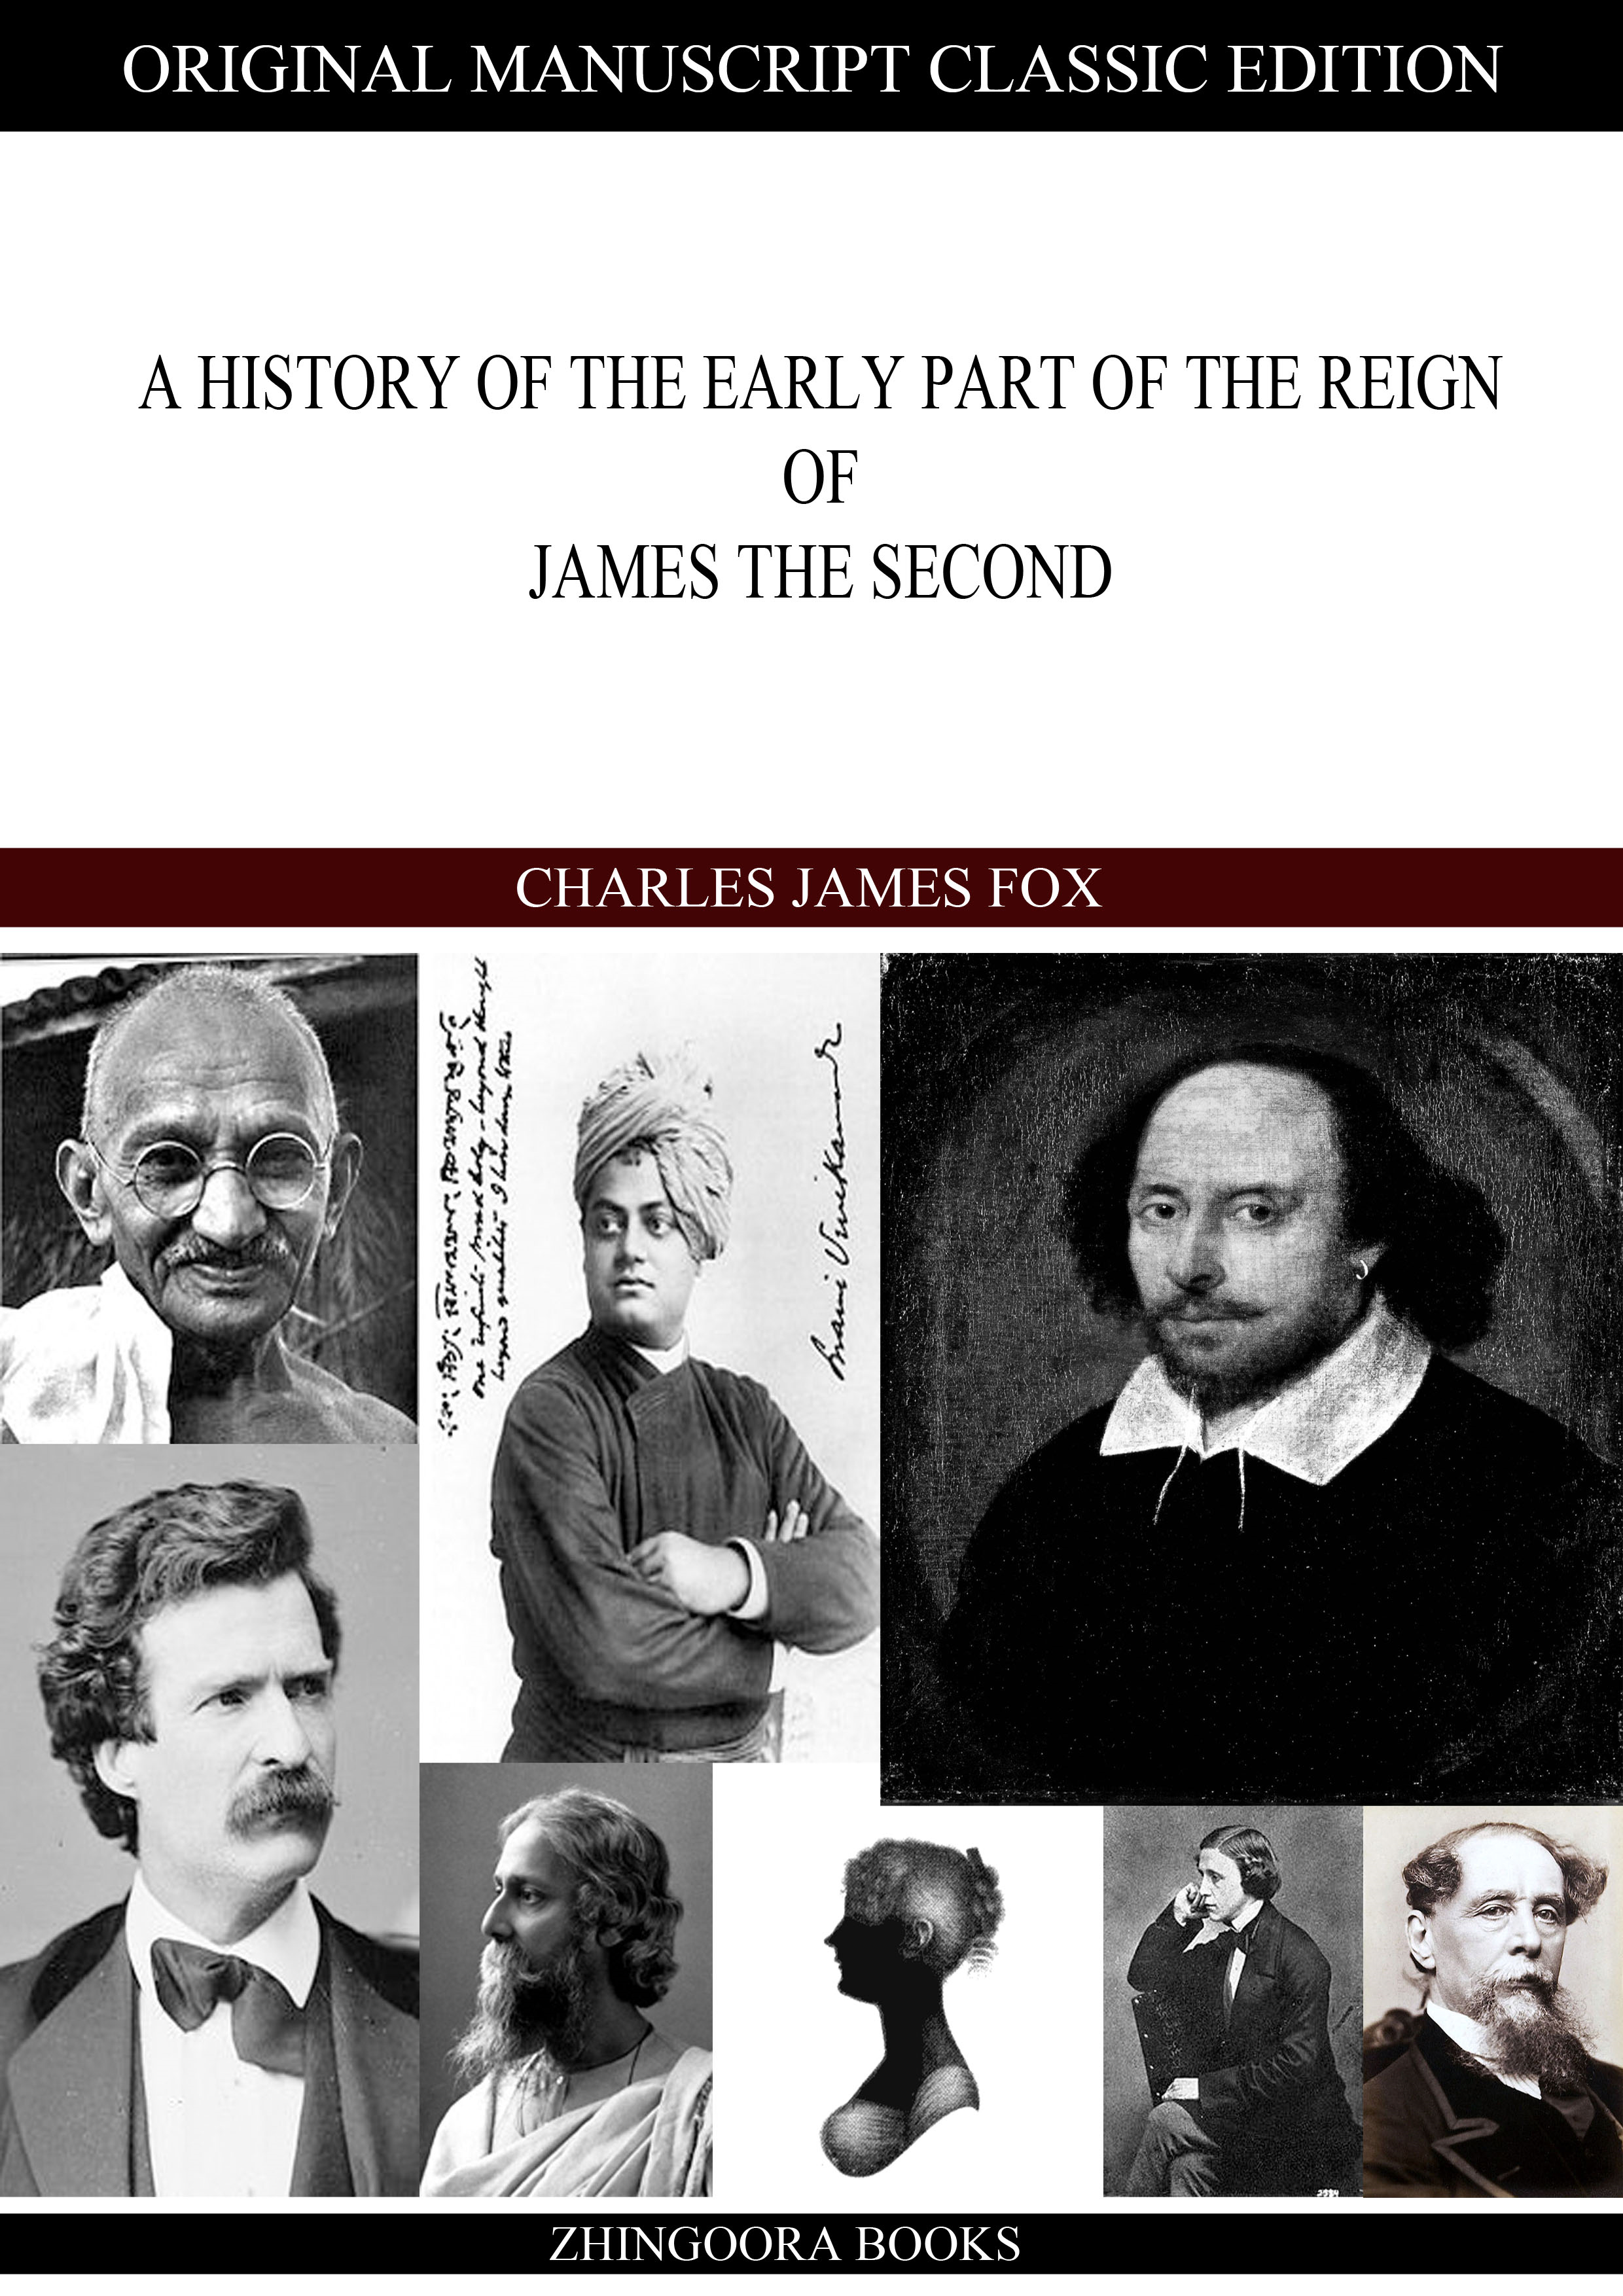 Charles James Fox - A HISTORY OF THE EARLY PART OF THE REIGN OF JAMES THE SECOND